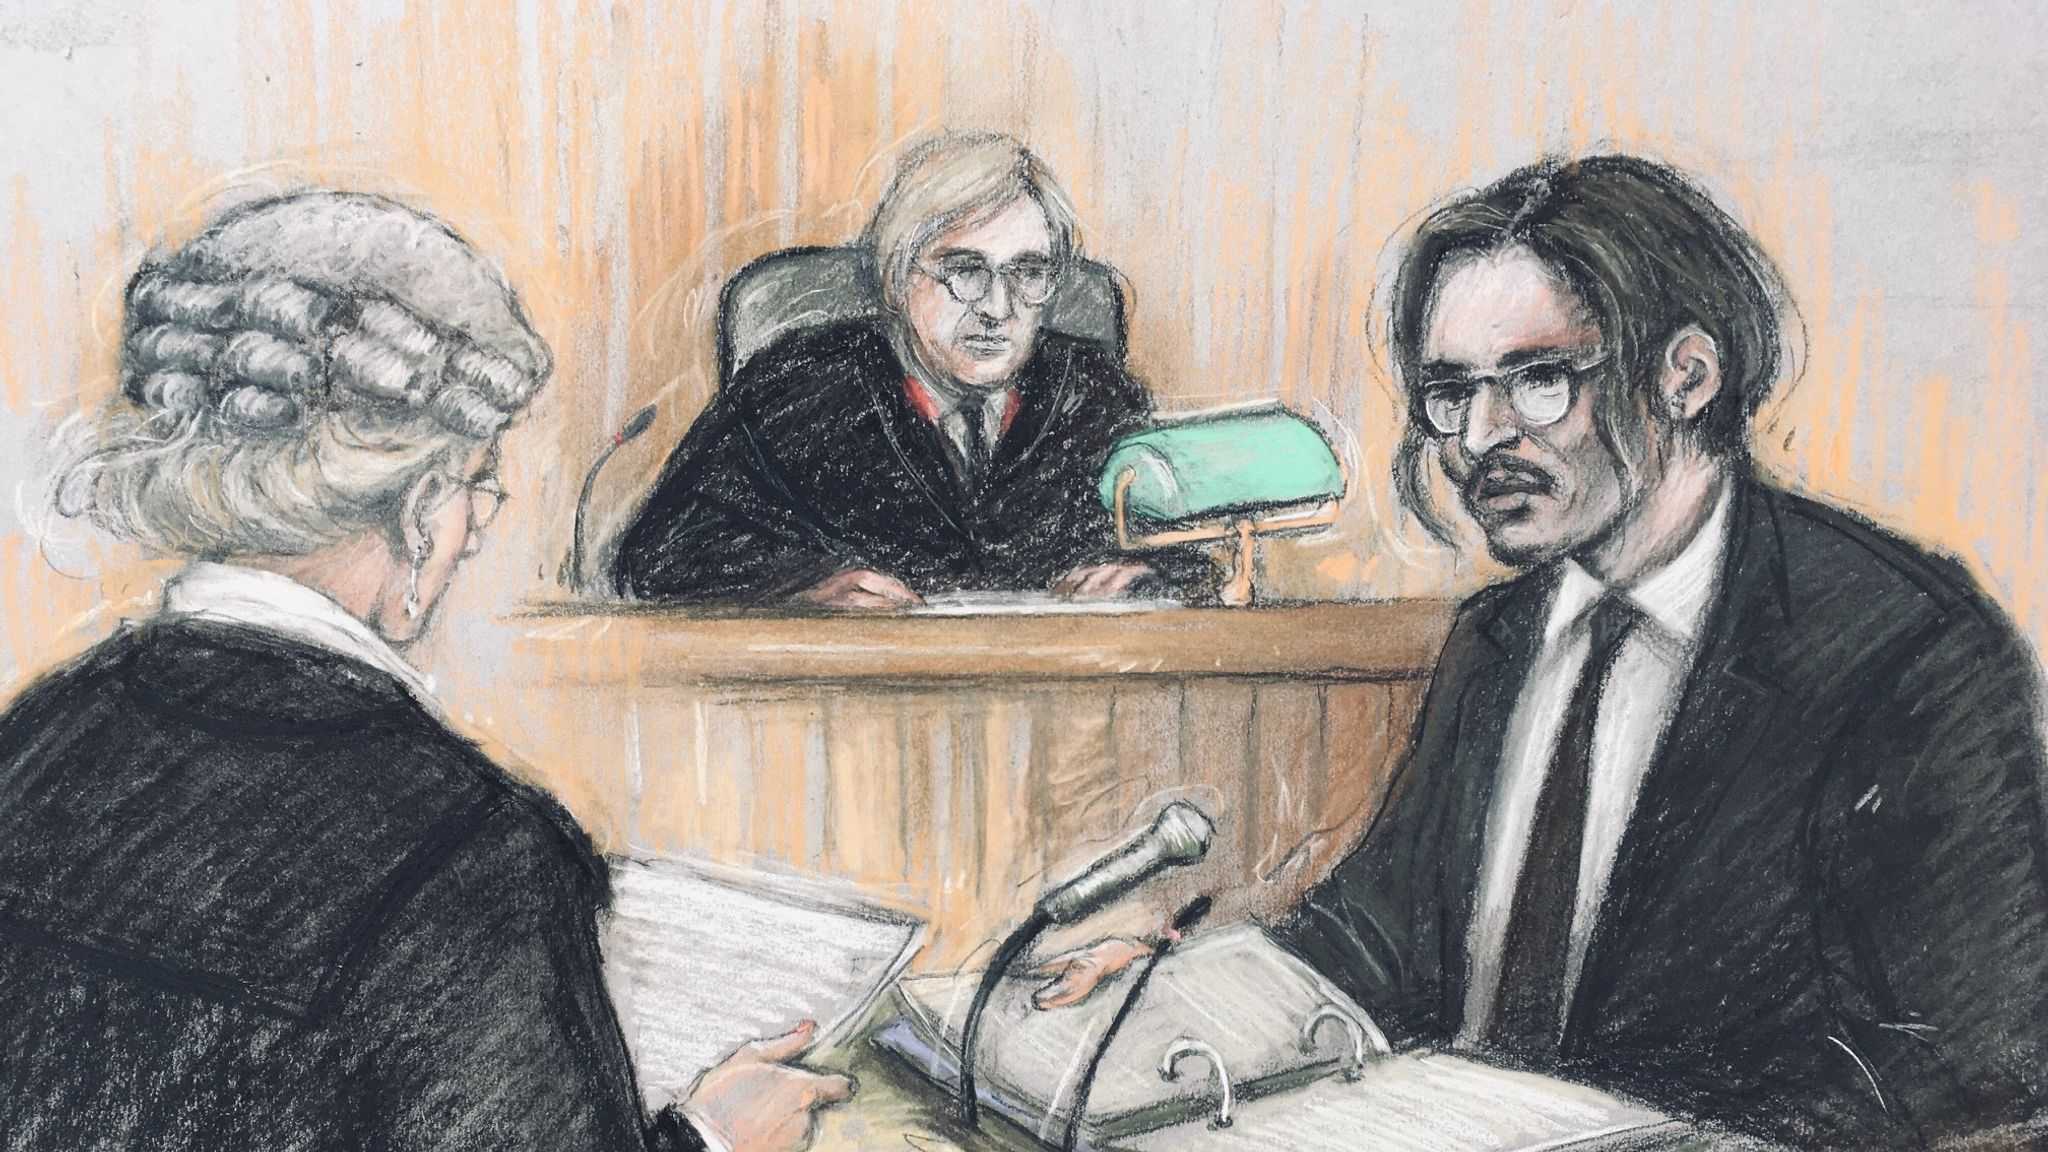 Court artist sketch by Elizabeth Cook of actor Johnny Depp (right) being cross-examined by Sasha Wass QC (left) before the judge, Mr Justice Nicol, at the High Court in London during a hearing in his libel case against the publishers of The Sun and its executive editor, Dan Wootton.